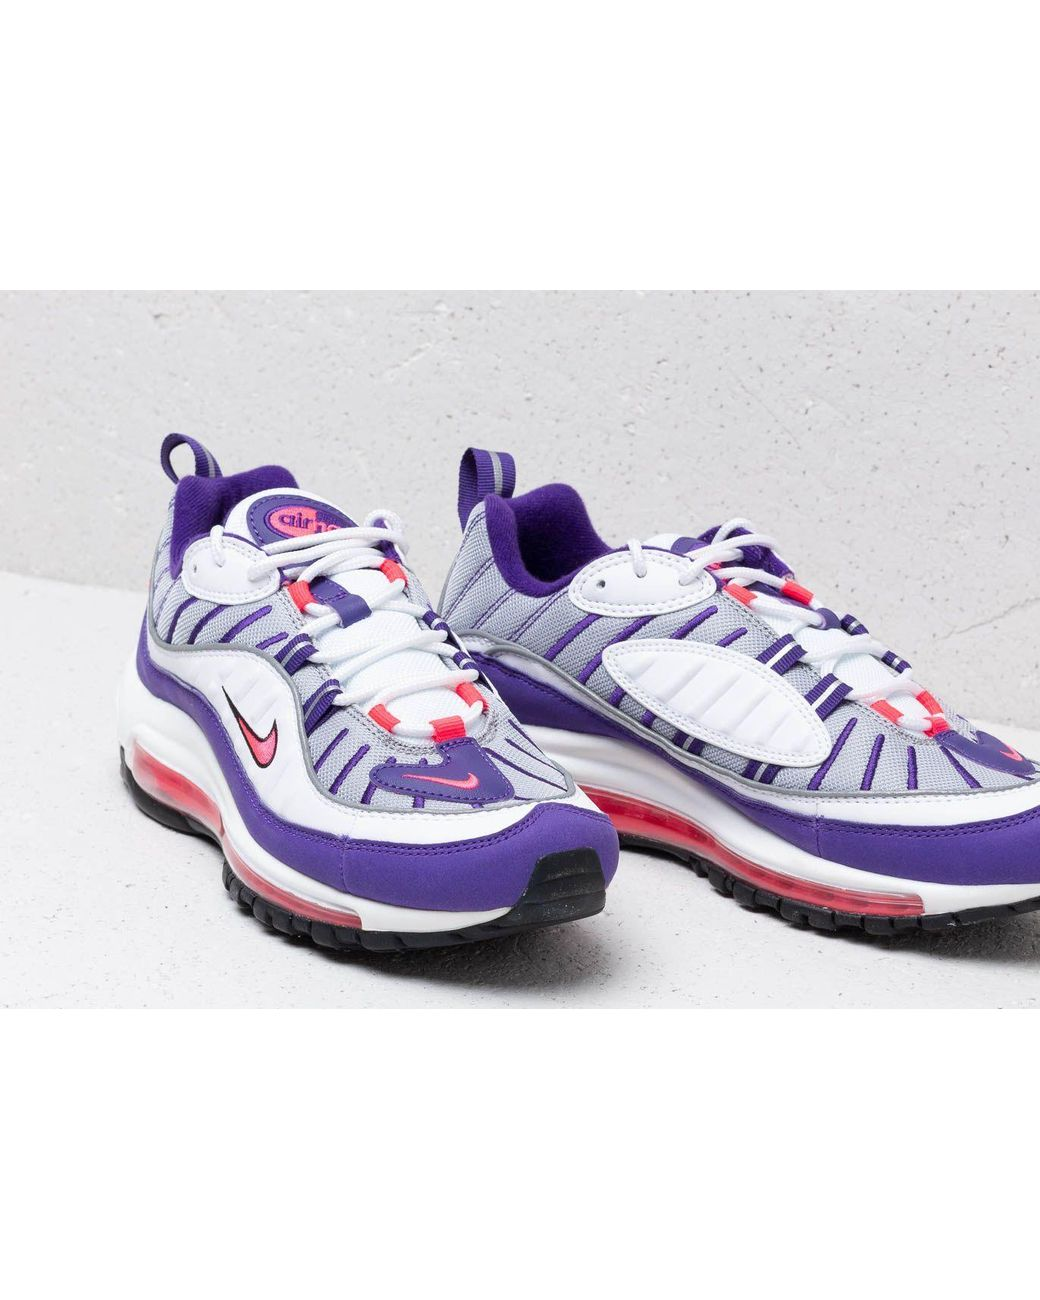 lowest price 98a1c 45ddb Nike W Air Max 98 White  Racer Pink-reflect Silver-black in White - Lyst